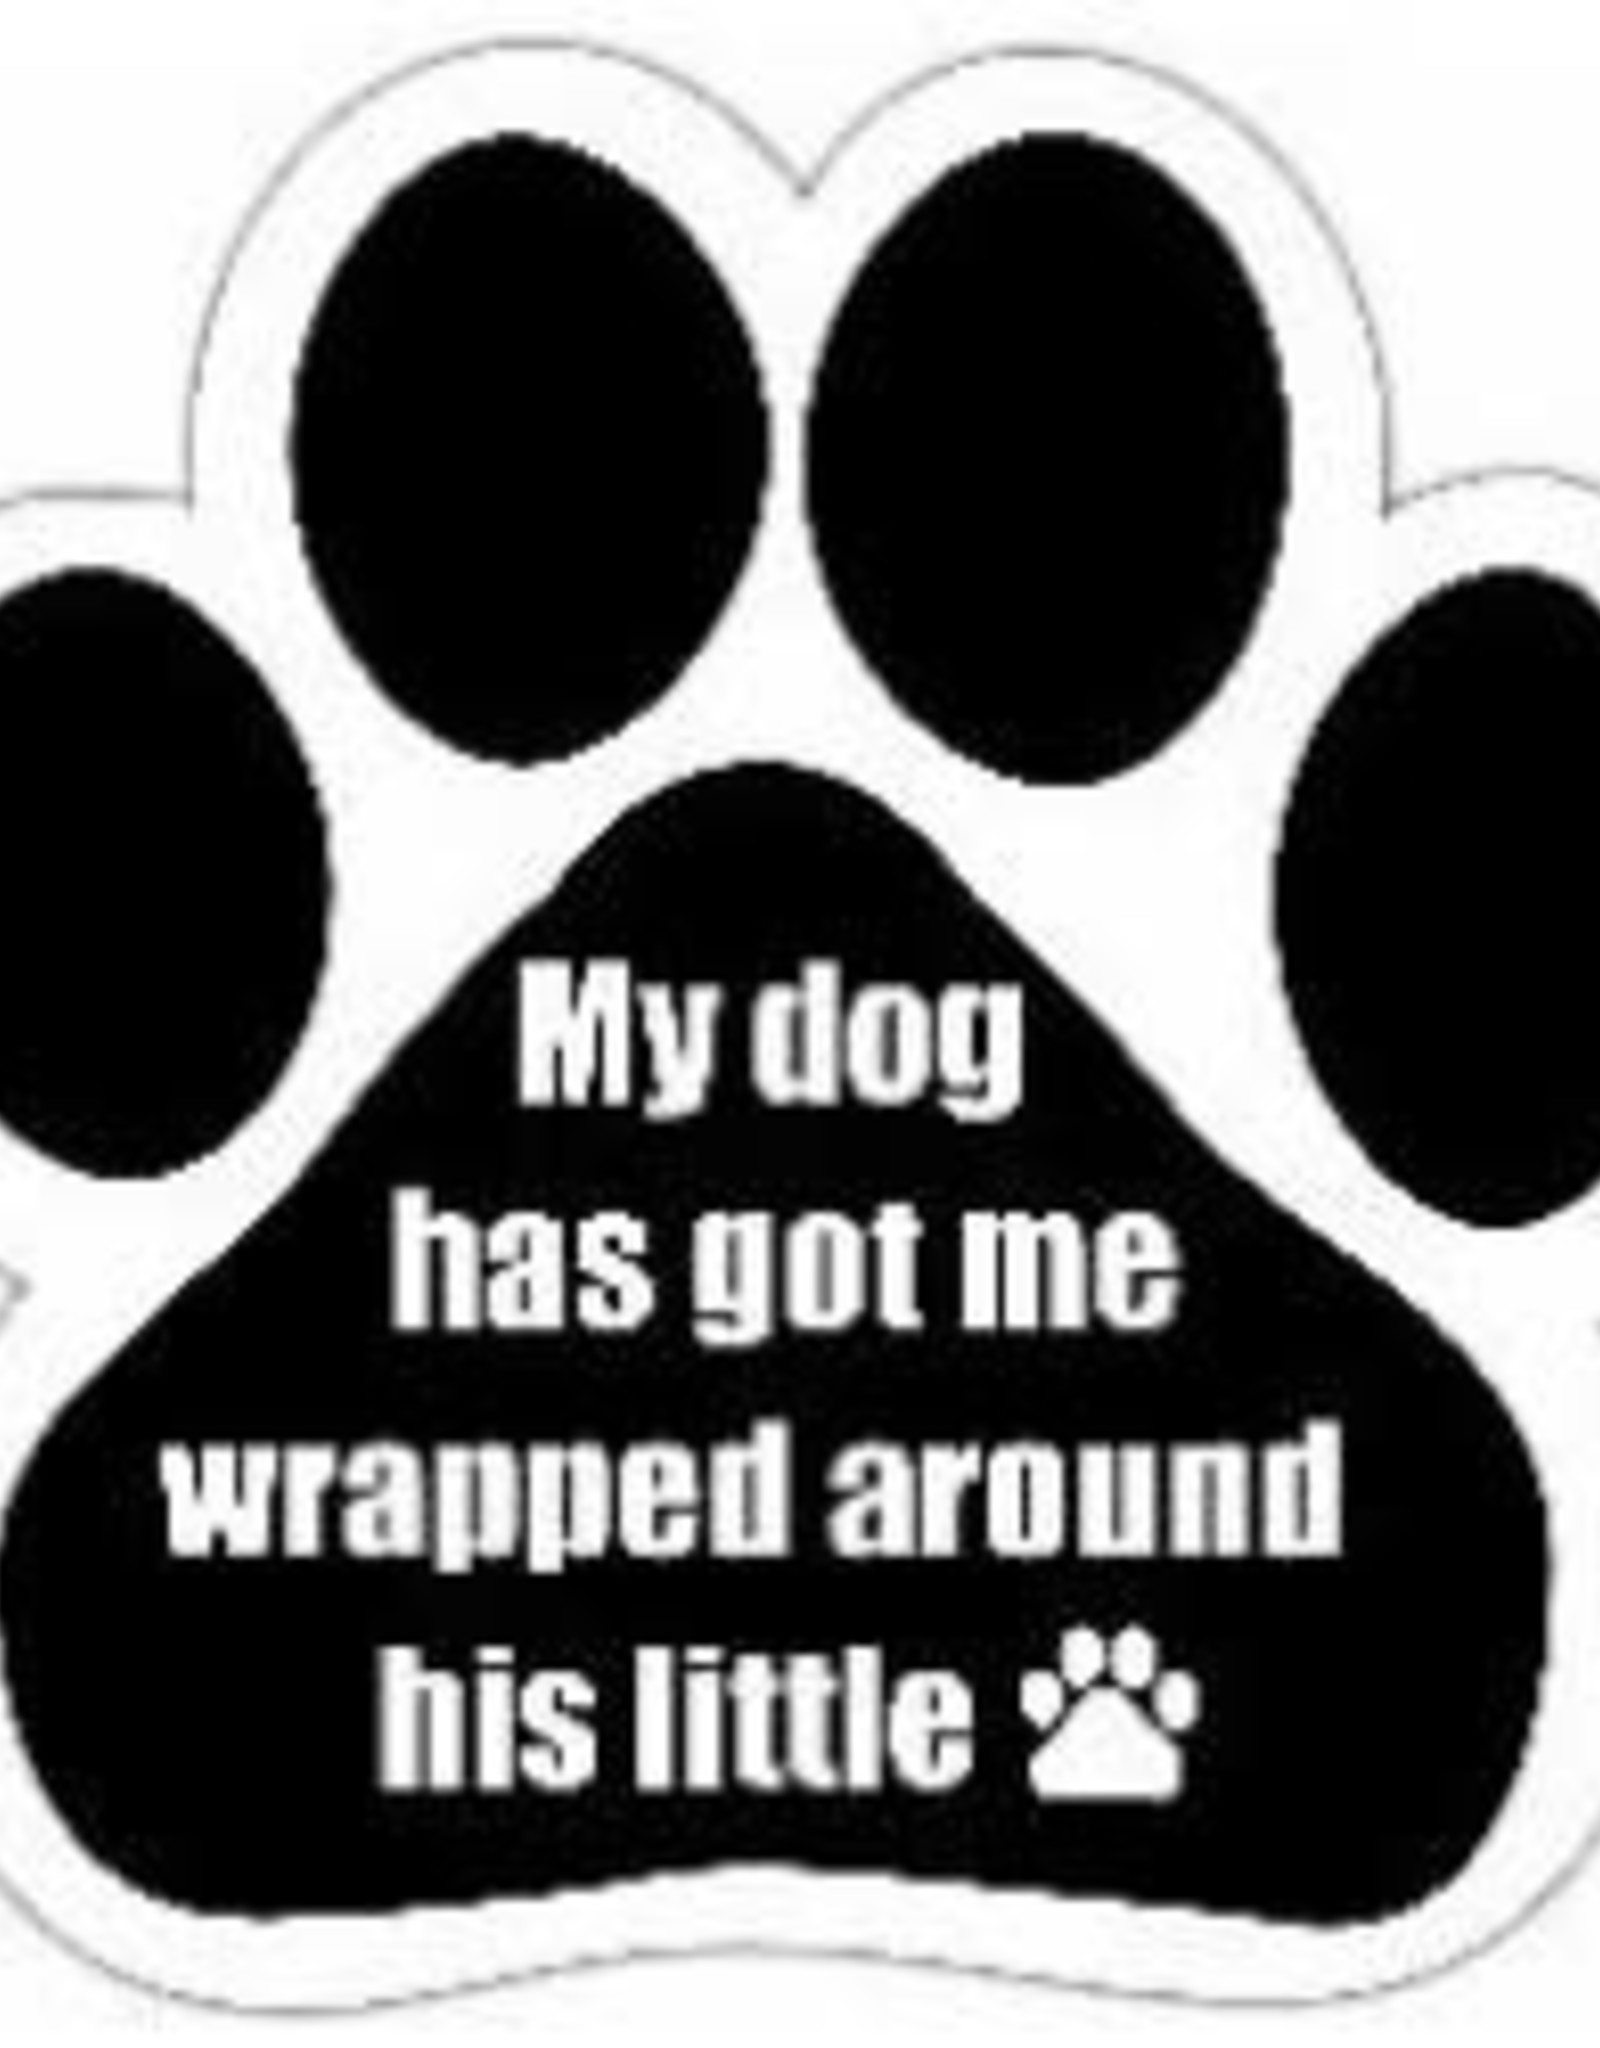 Car Magnet: My dog has got me wrapped around his little paw